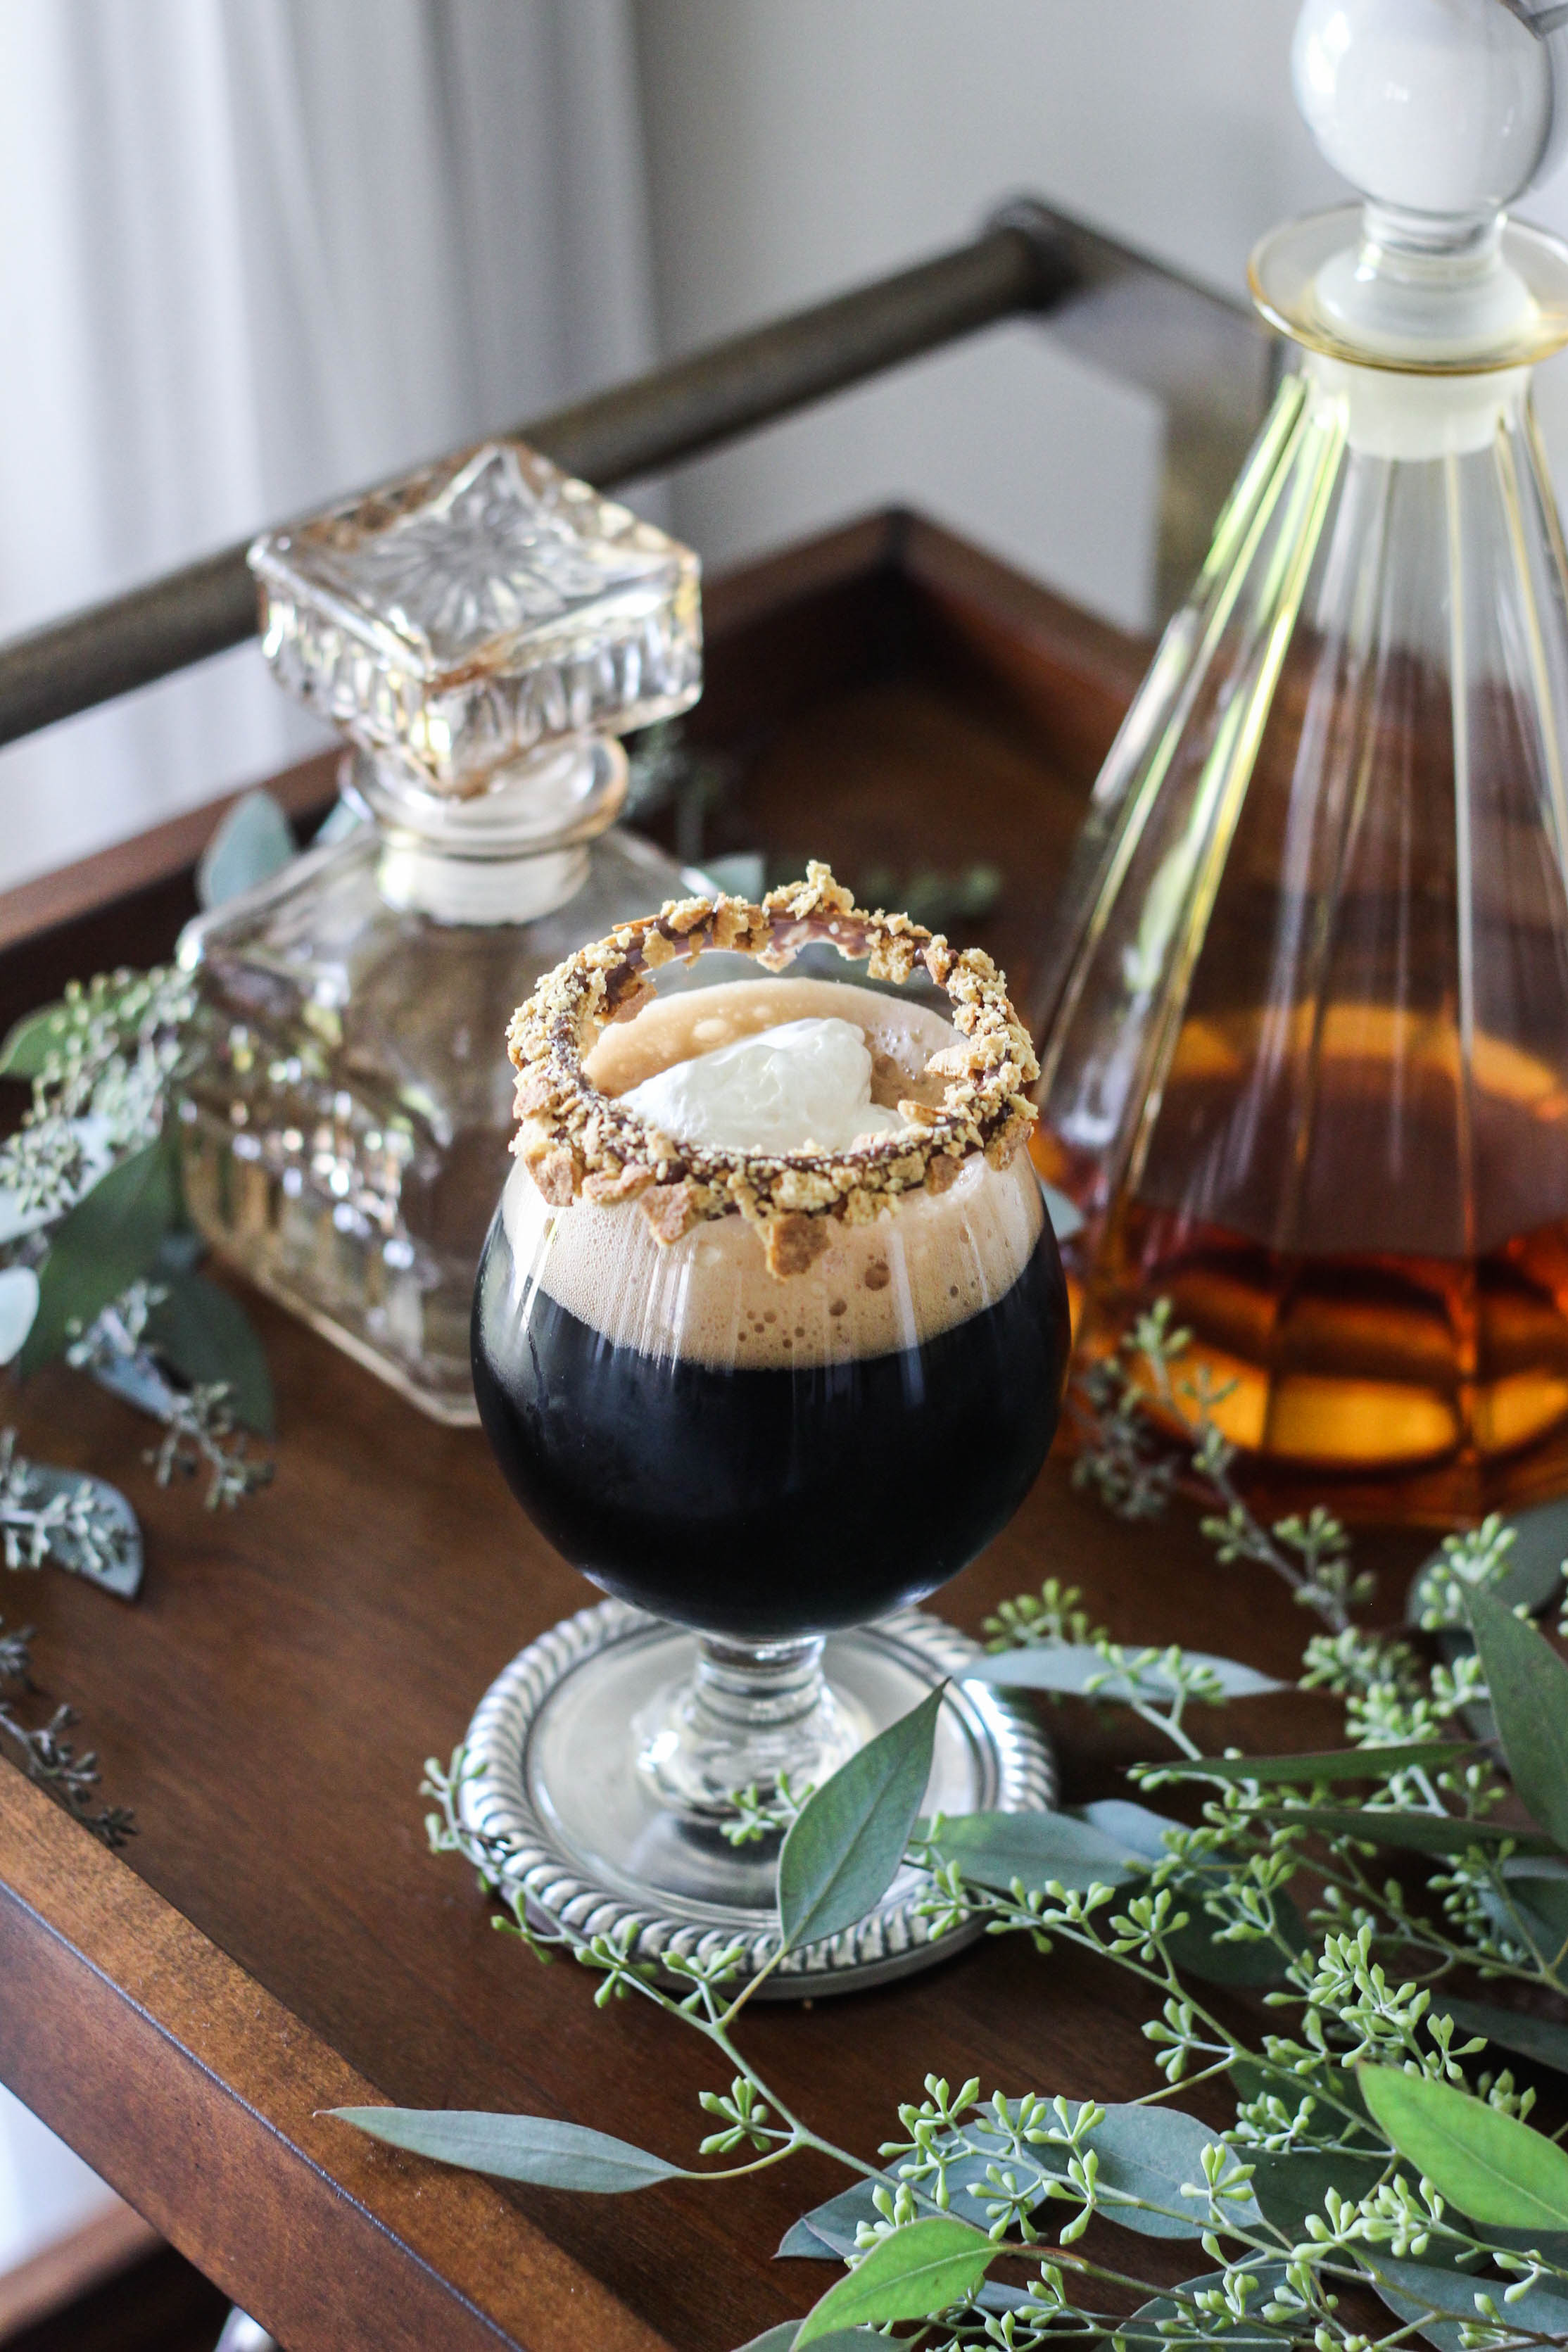 Campfire Stout Cocktail by Liquor.com Contributing Writer The Frosted Petticoat